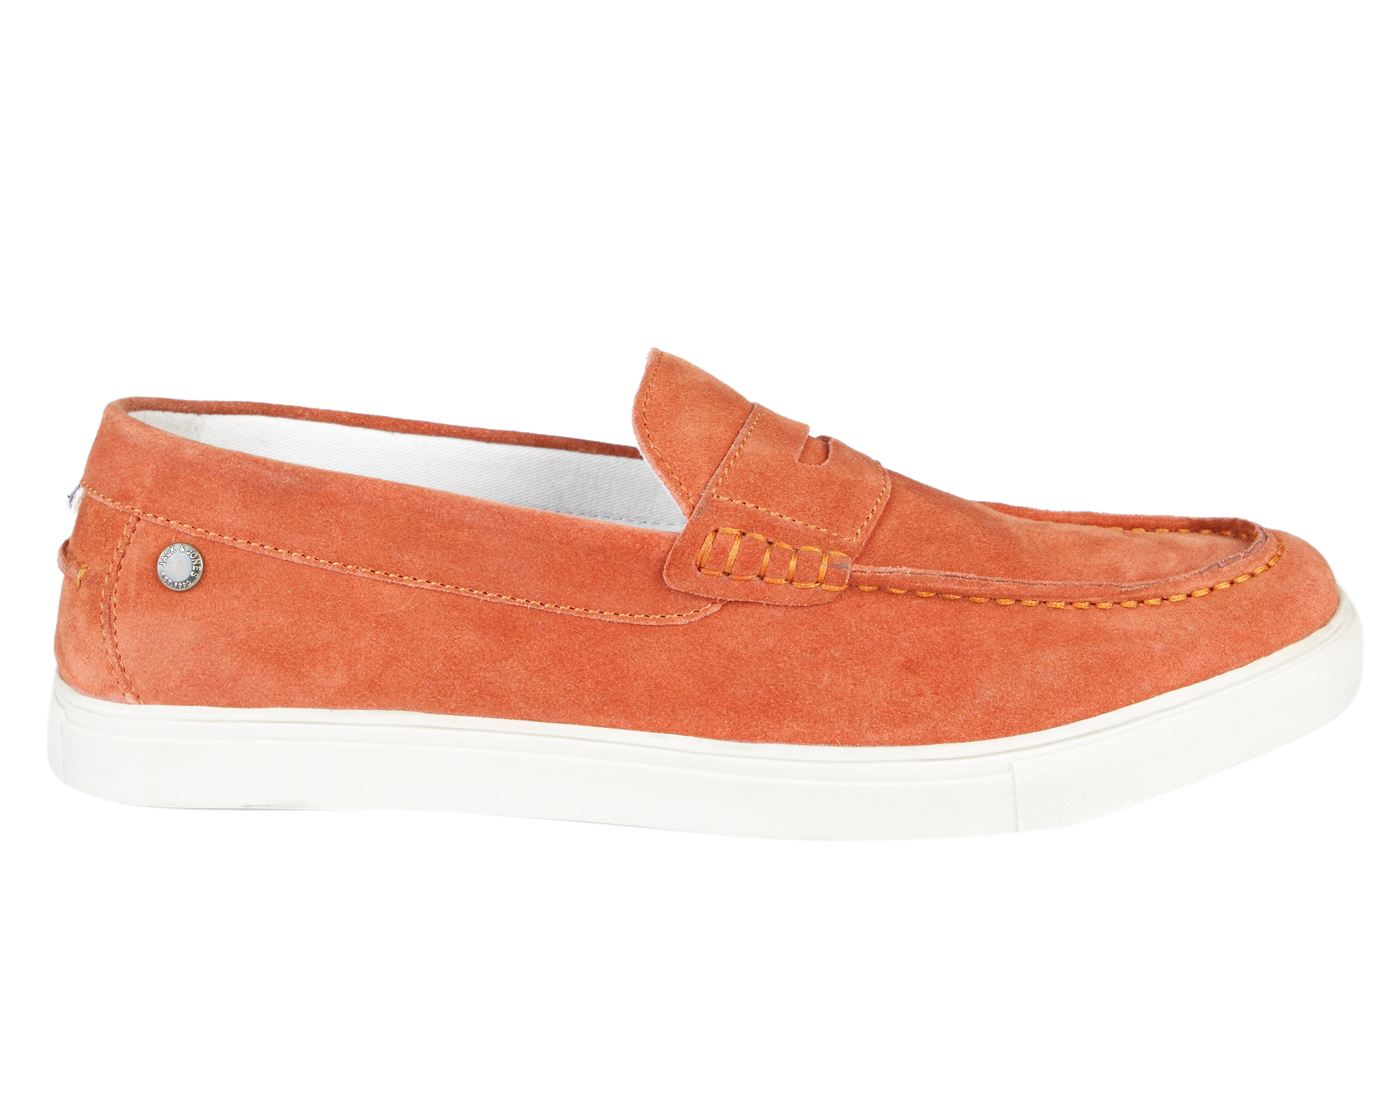 Jack & Jones Ketchup Leather (TPR Sole) Slip-On Sneakers